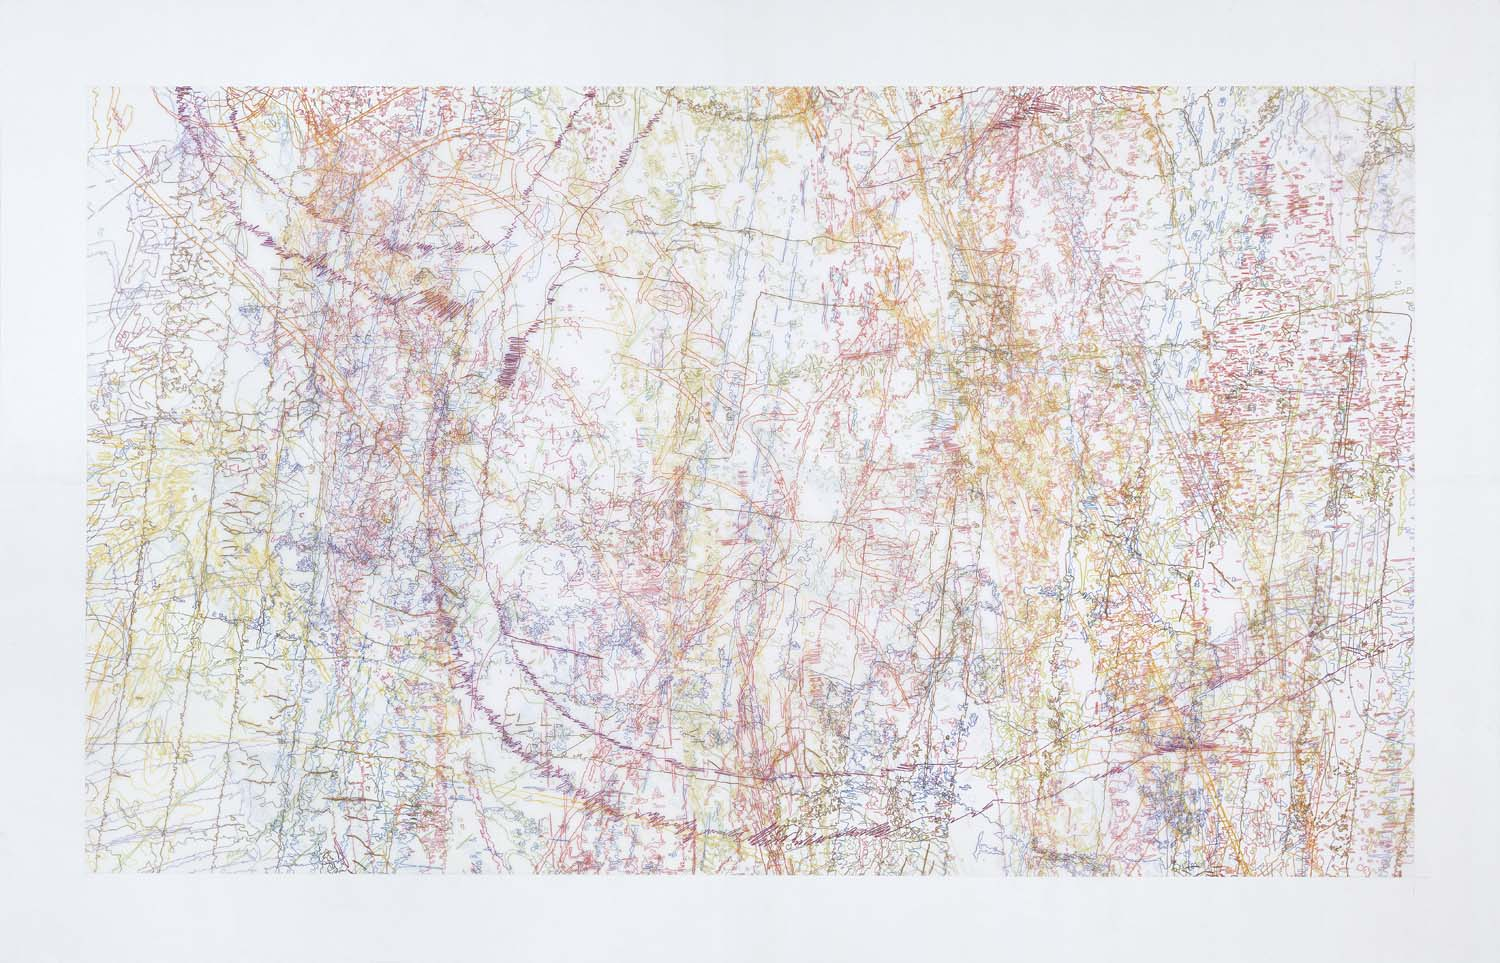 #258 Drawing (Tracings from the Indianapolis Motor Speedway and the L.A. River)